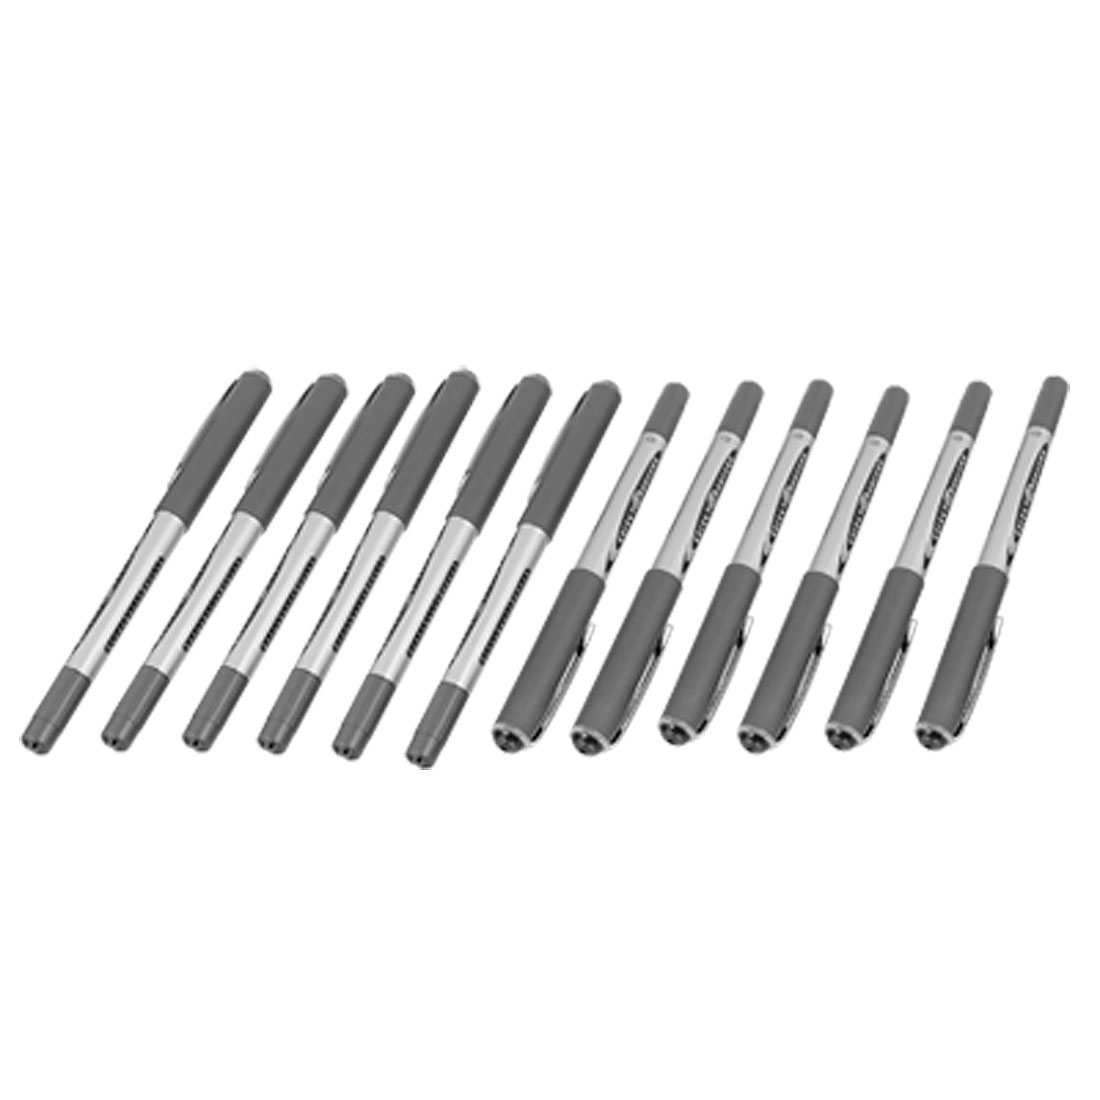 12 pcs Gray Shell Black Ink Writing 0.5mm Gel Pen